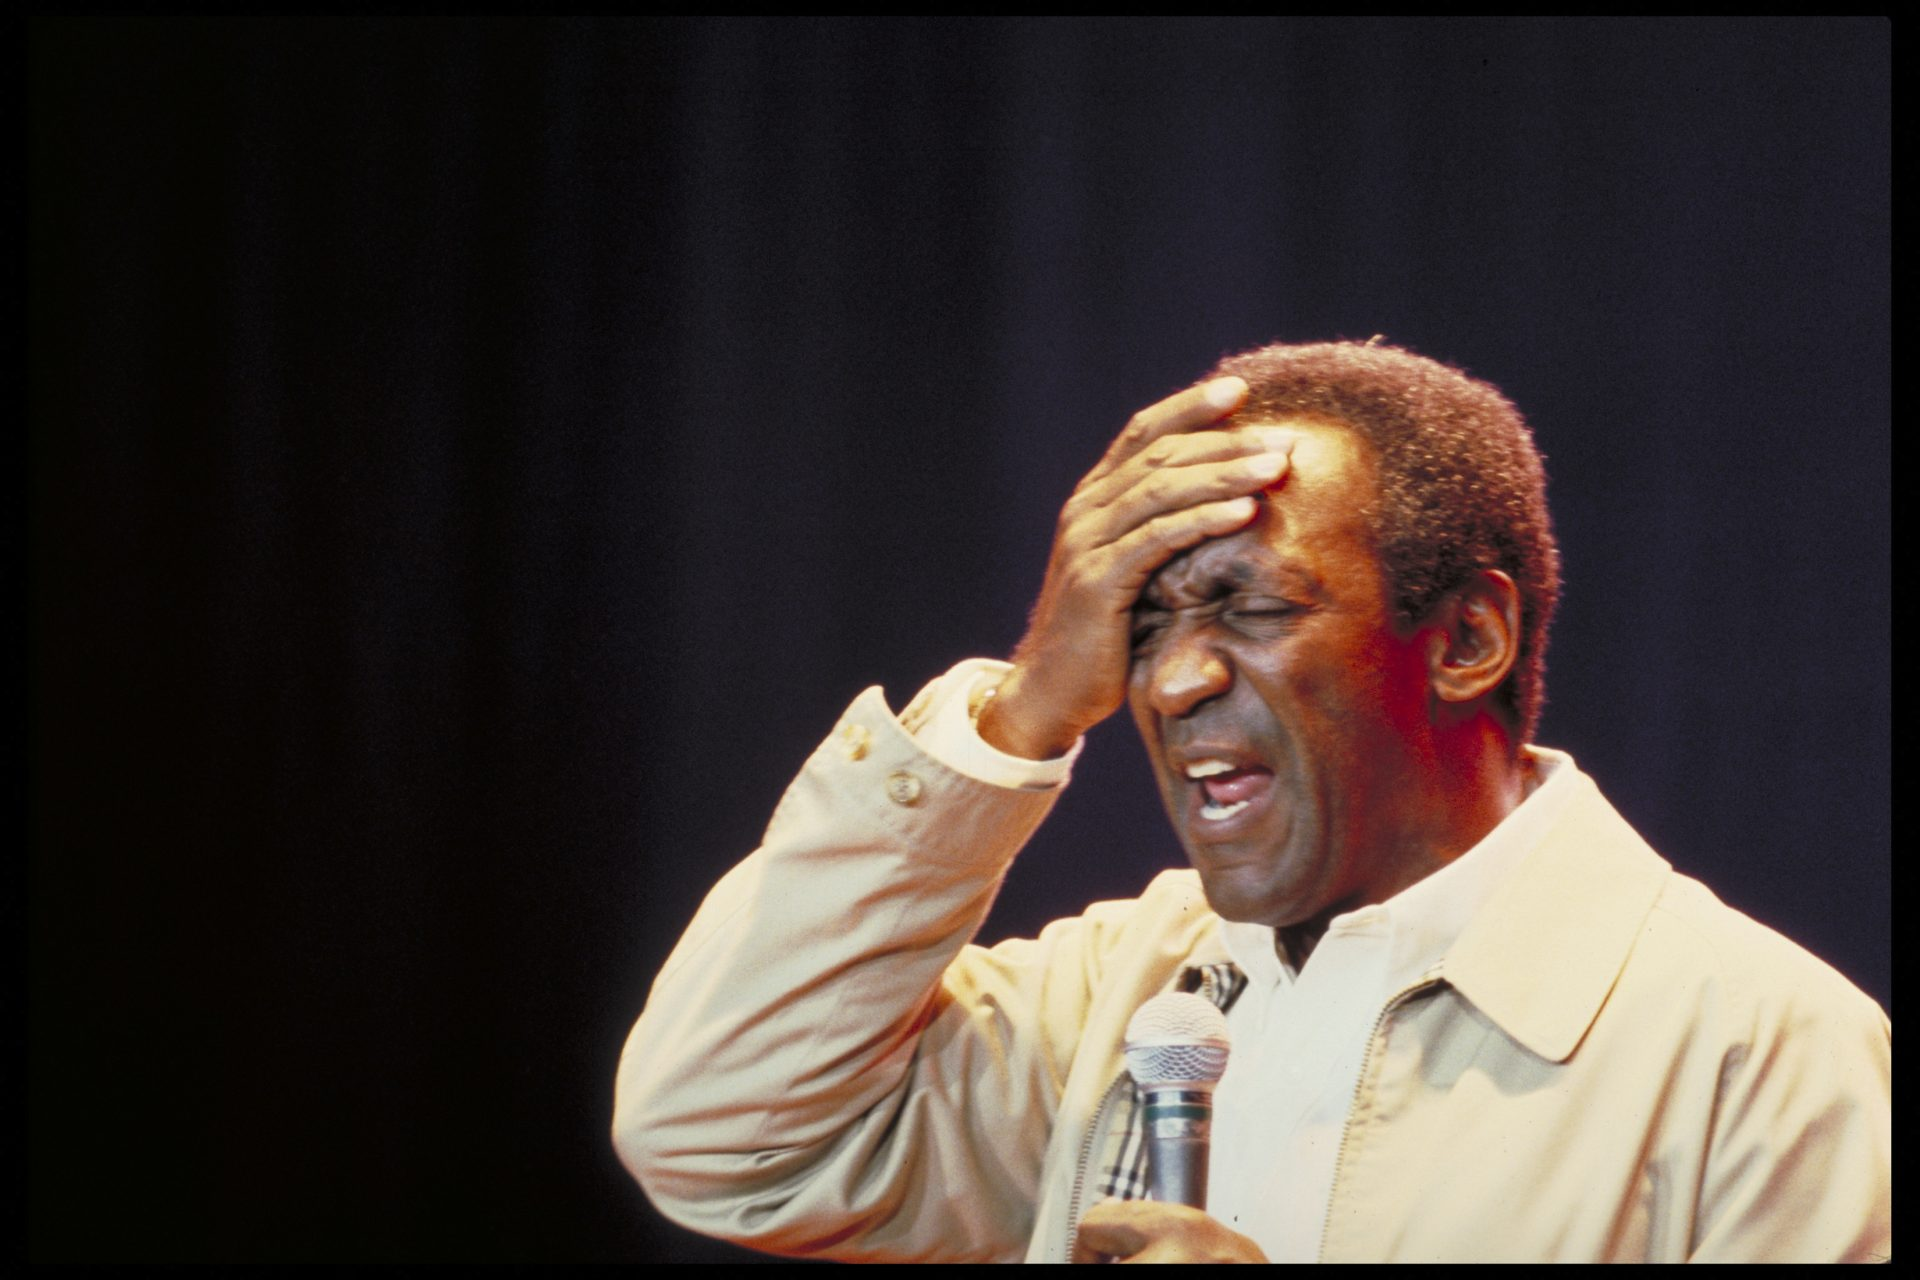 No joking around: Bill Cosby is planning a stand-up tour